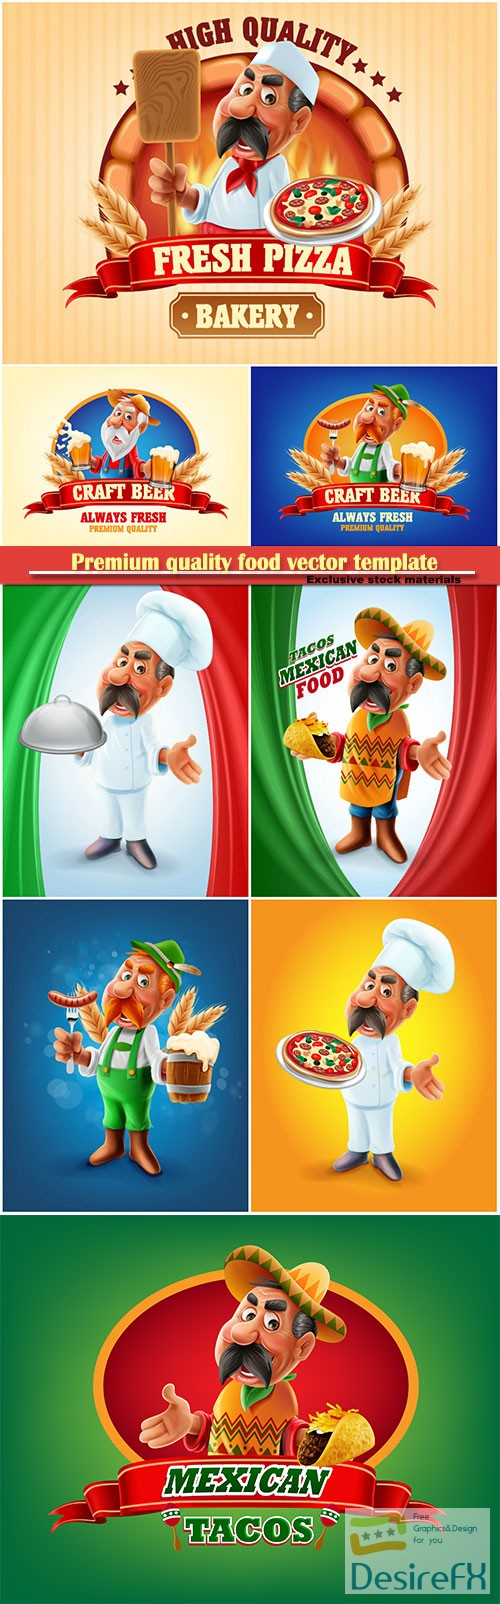 stock-vectors - Premium quality food vector template, pizza, beer, Mexican food